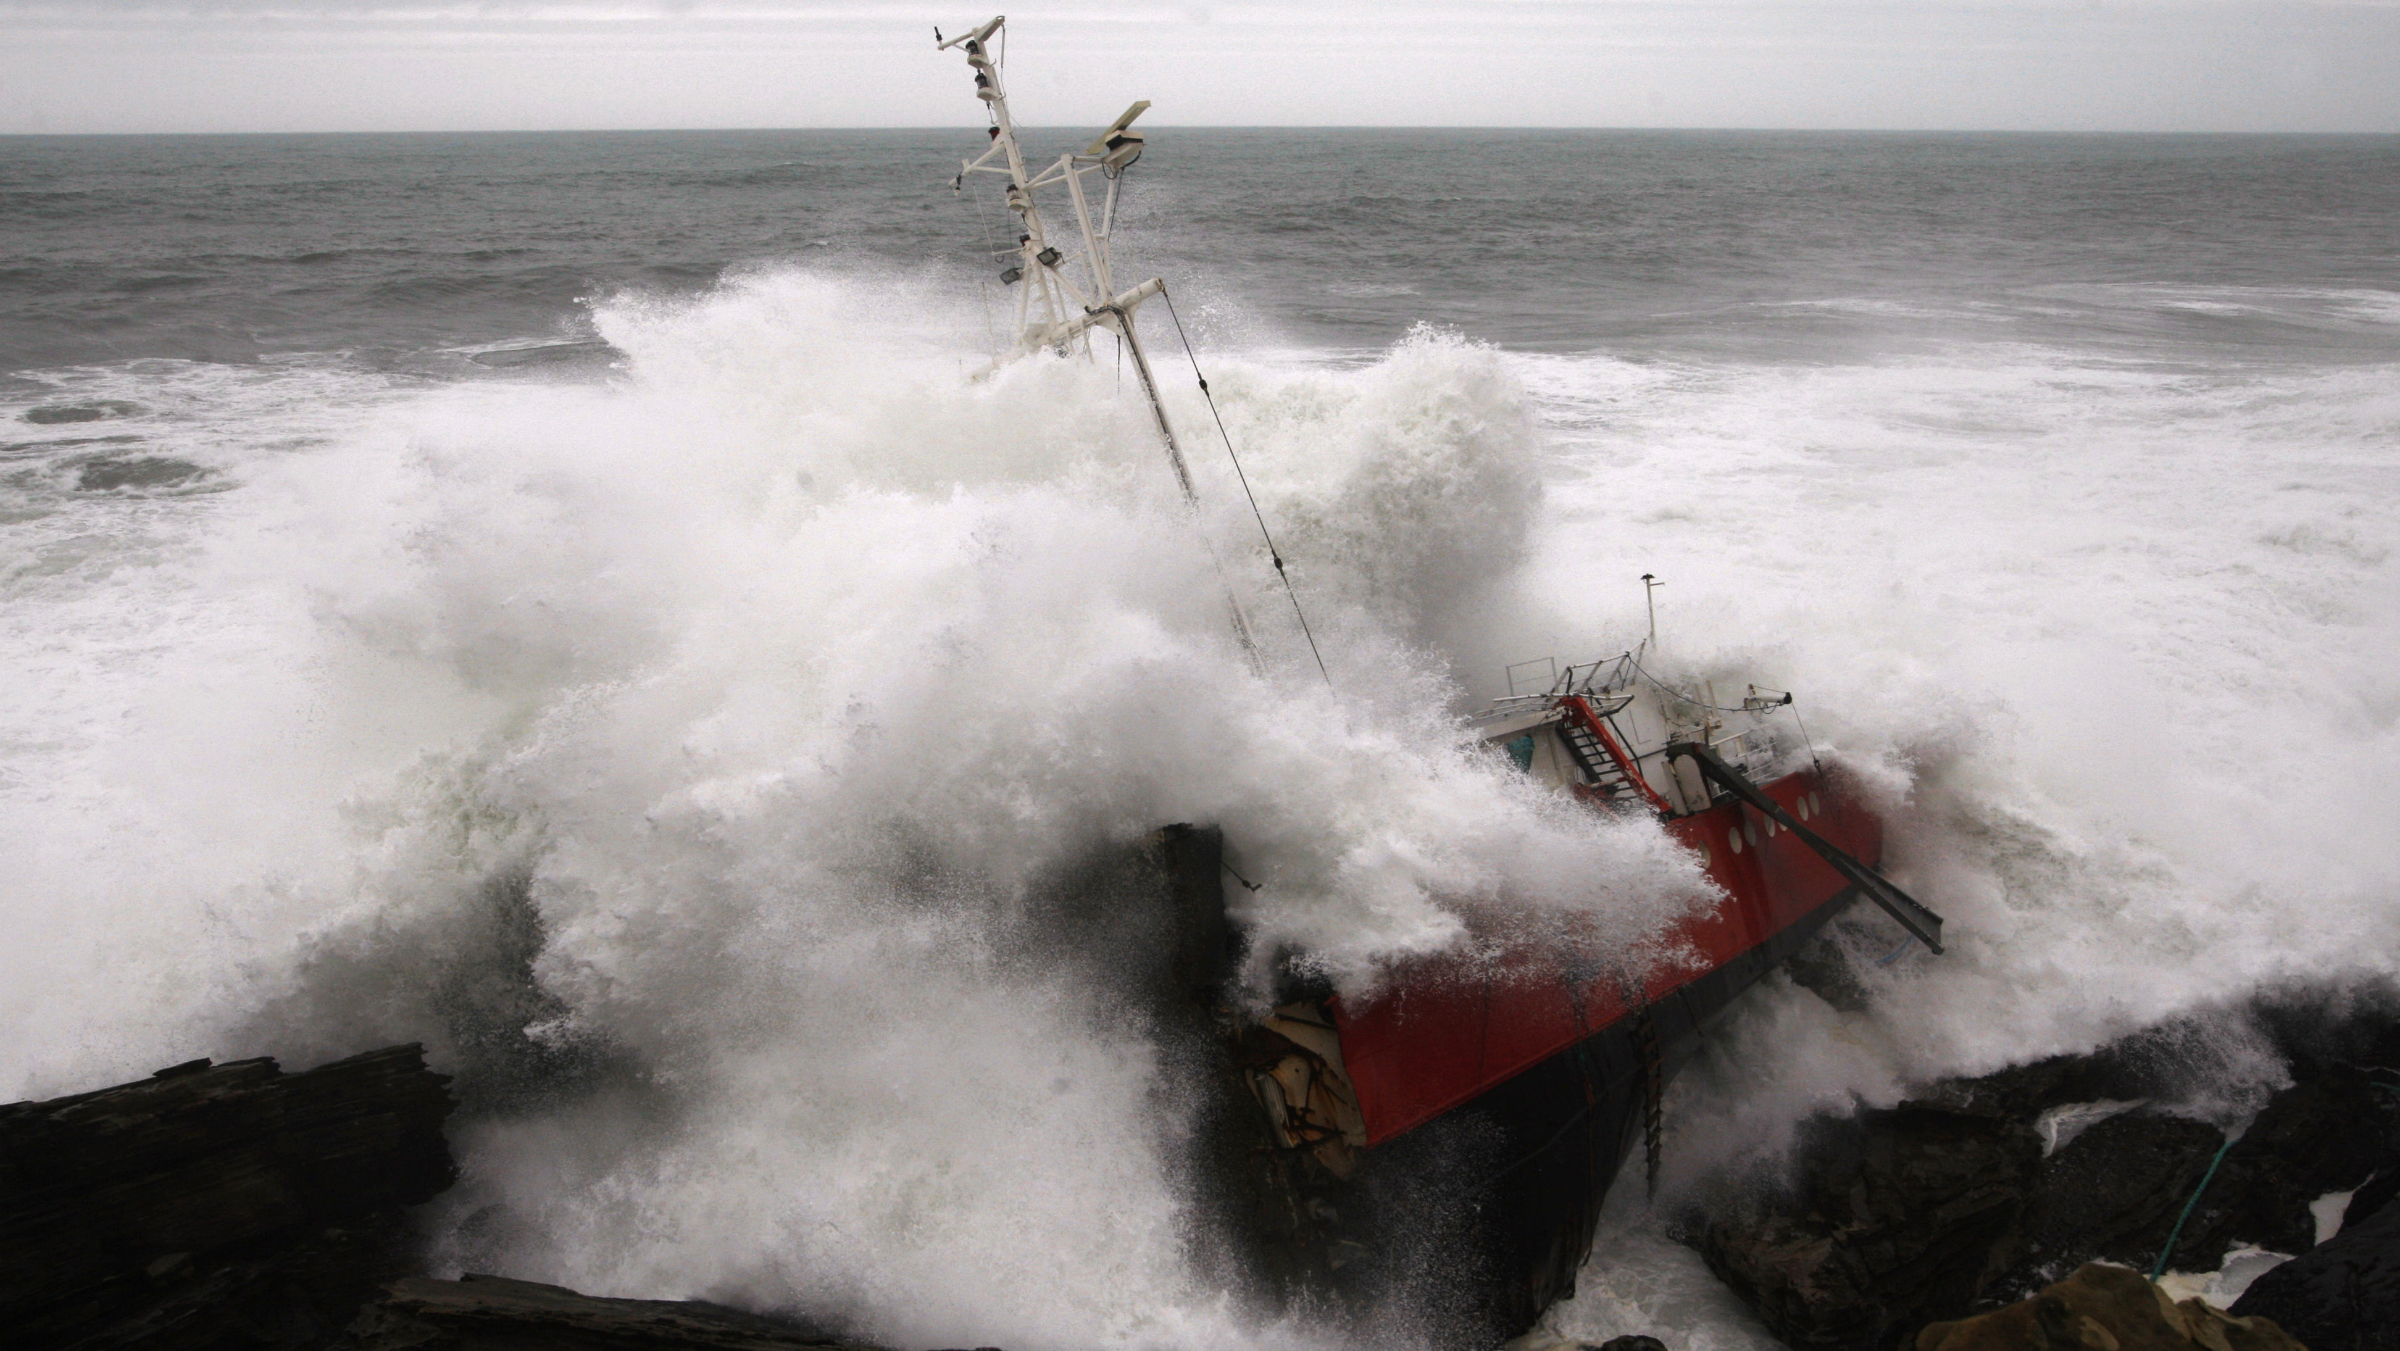 A wave crashes against the hull of the merchant ship Maro, wrecked near the Basque port town of Hondaribbia in the Bay of Biscay, March 11, 2008. The ship ran aground and was broken into three pieces by storm force winds and waves that have sunk numerous boats and caused extensive damage in the Biscay area. REUTERS/Vincent West